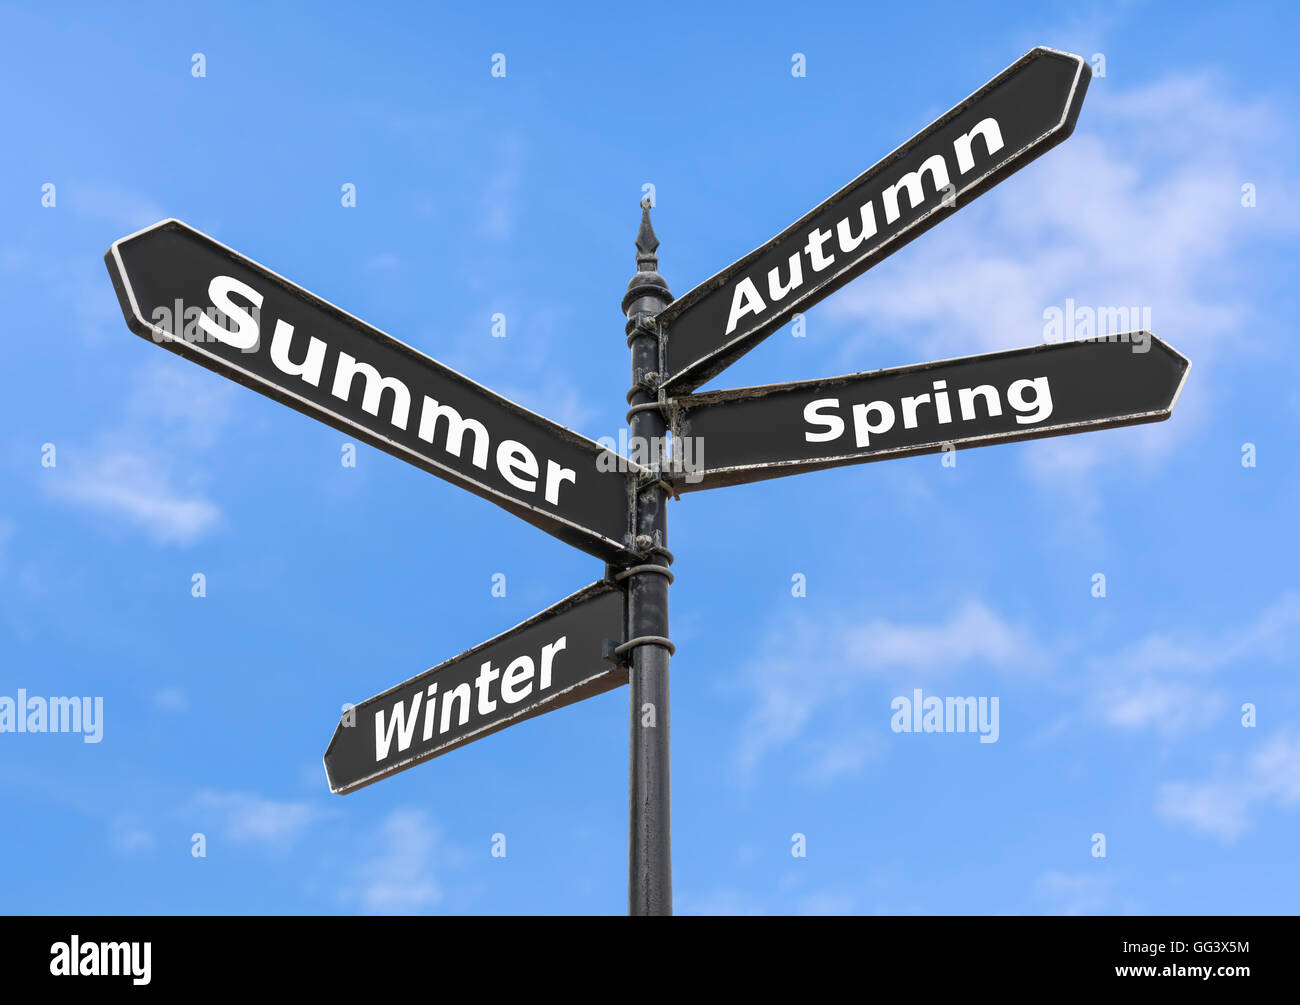 Seasons concept sign. - Stock Image